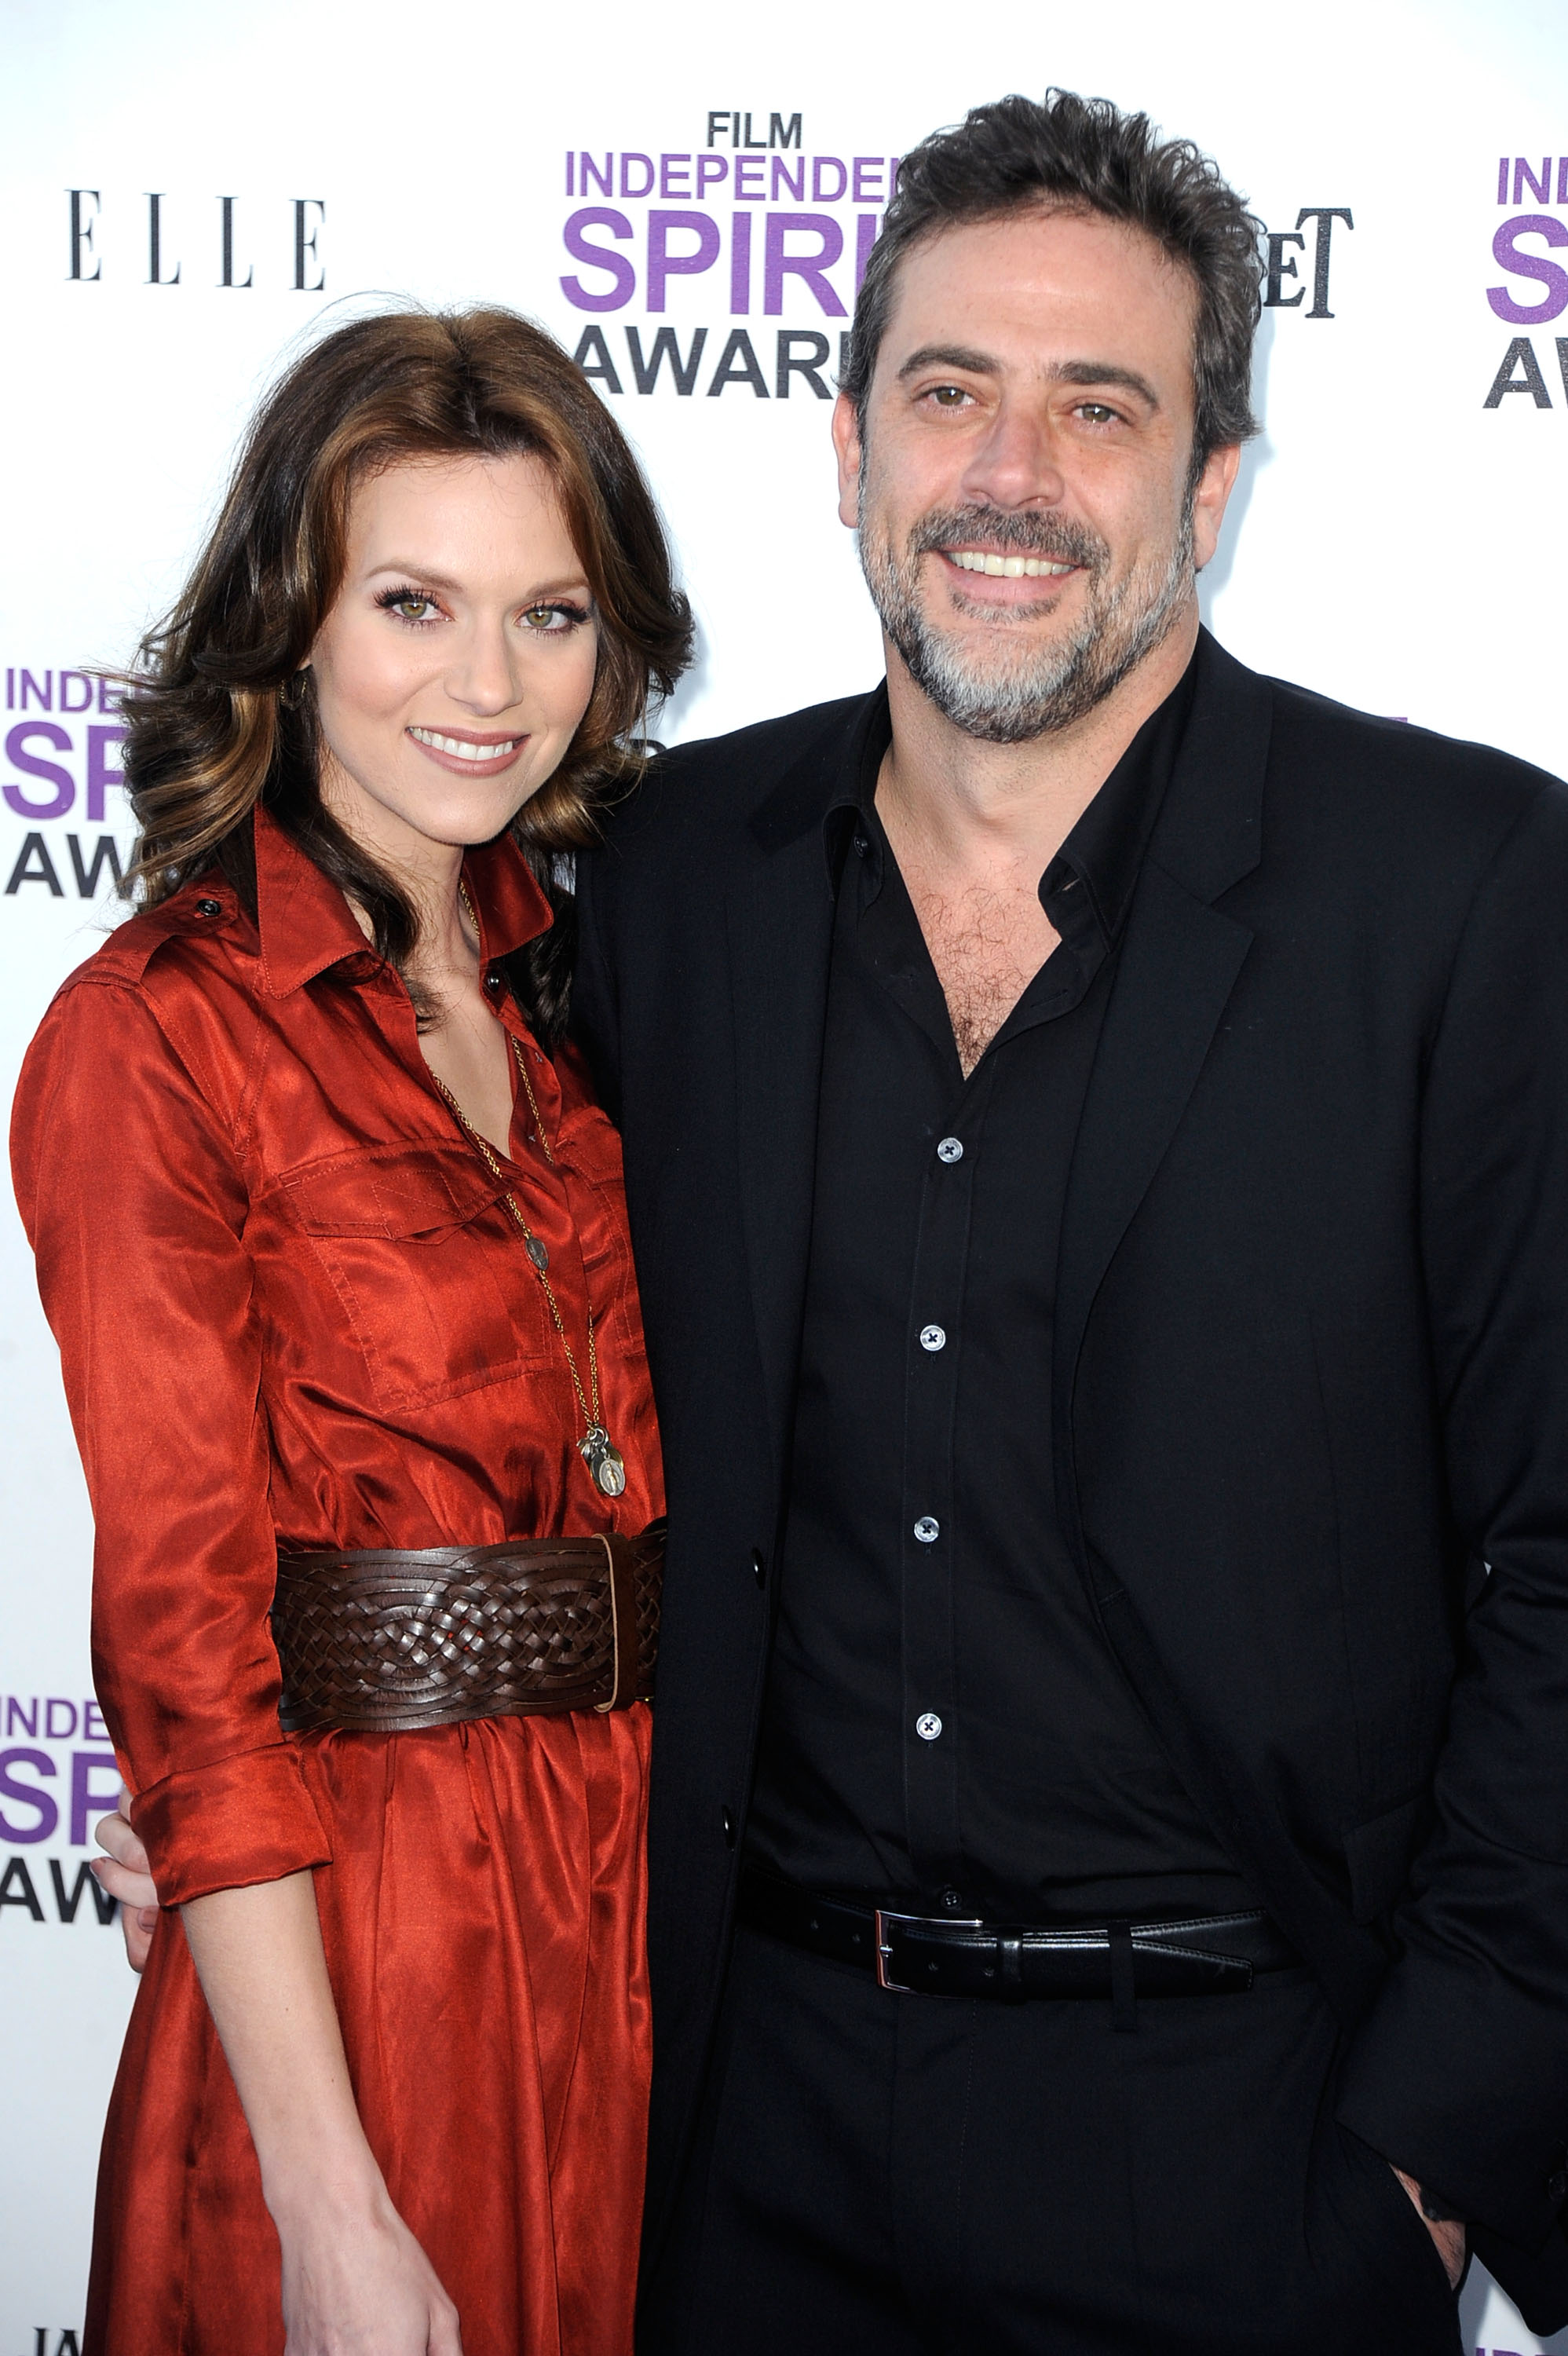 19 Photos of the 'One Tree Hill' Cast That Will Make You ... Hilarie Burton Wedding Ring